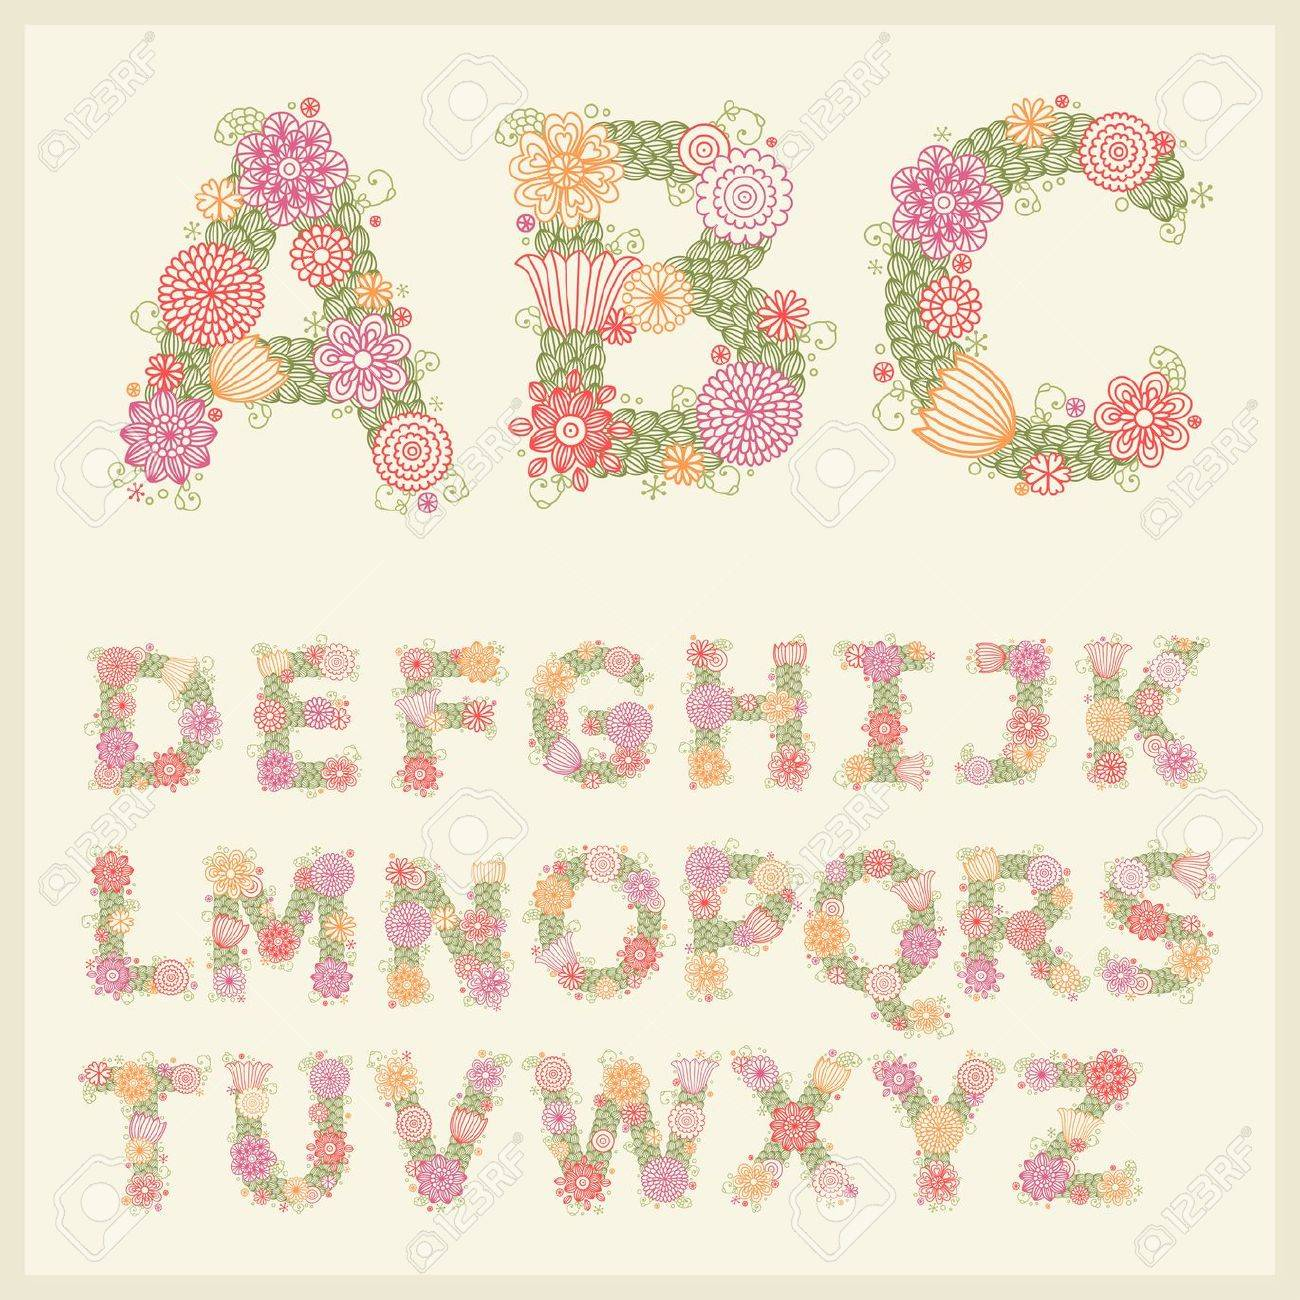 colorful flower font royalty free cliparts vectors and stock